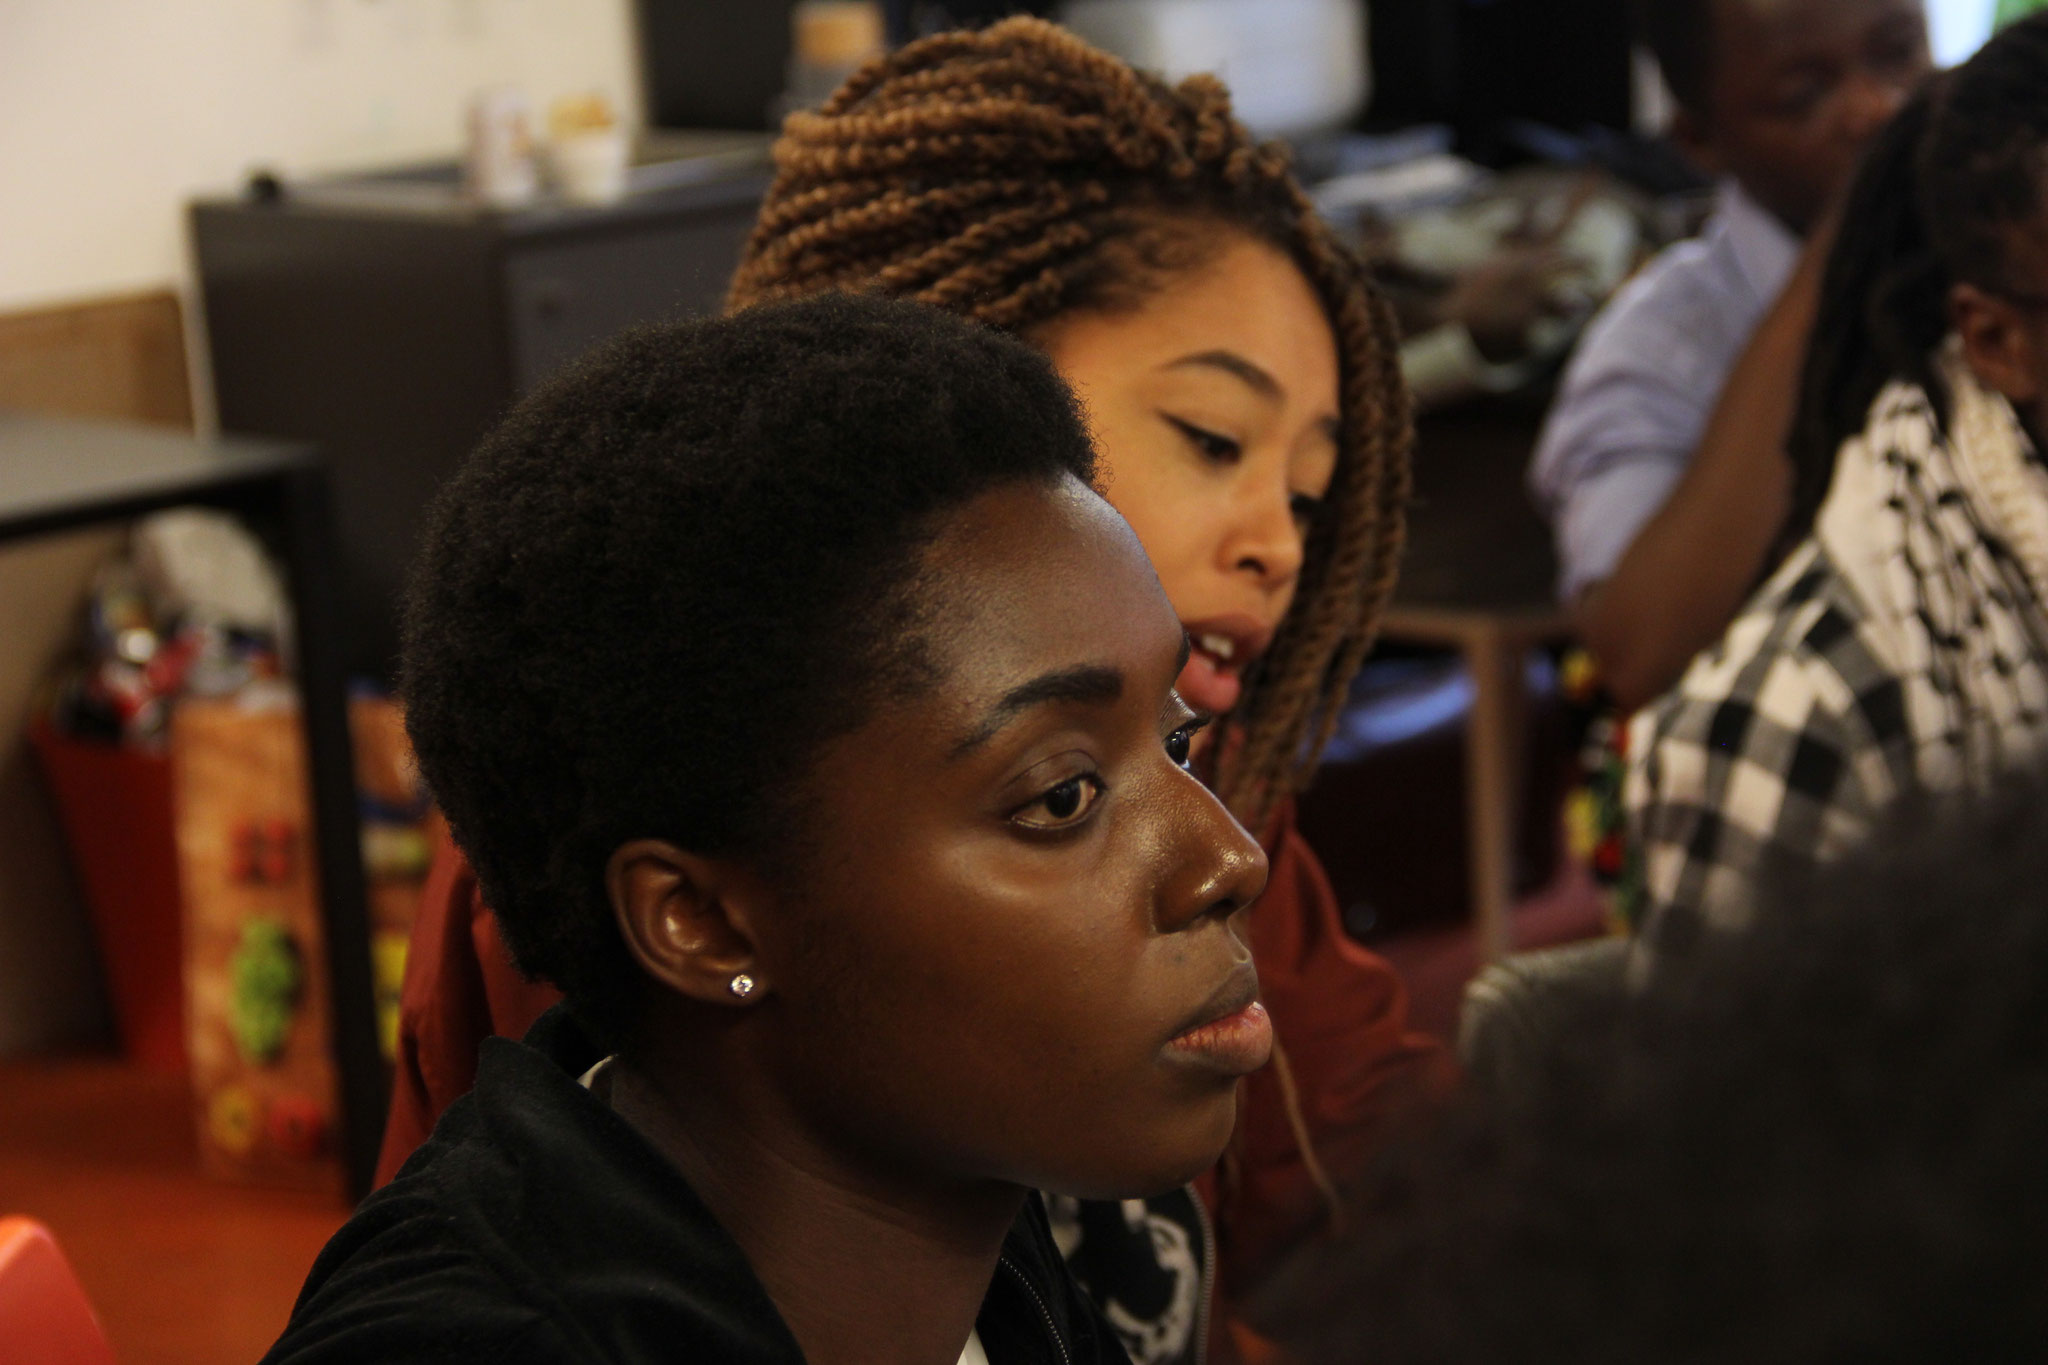 The members of Black Speaks Back preparing for their afrofuturistic movie. Photo by the author.